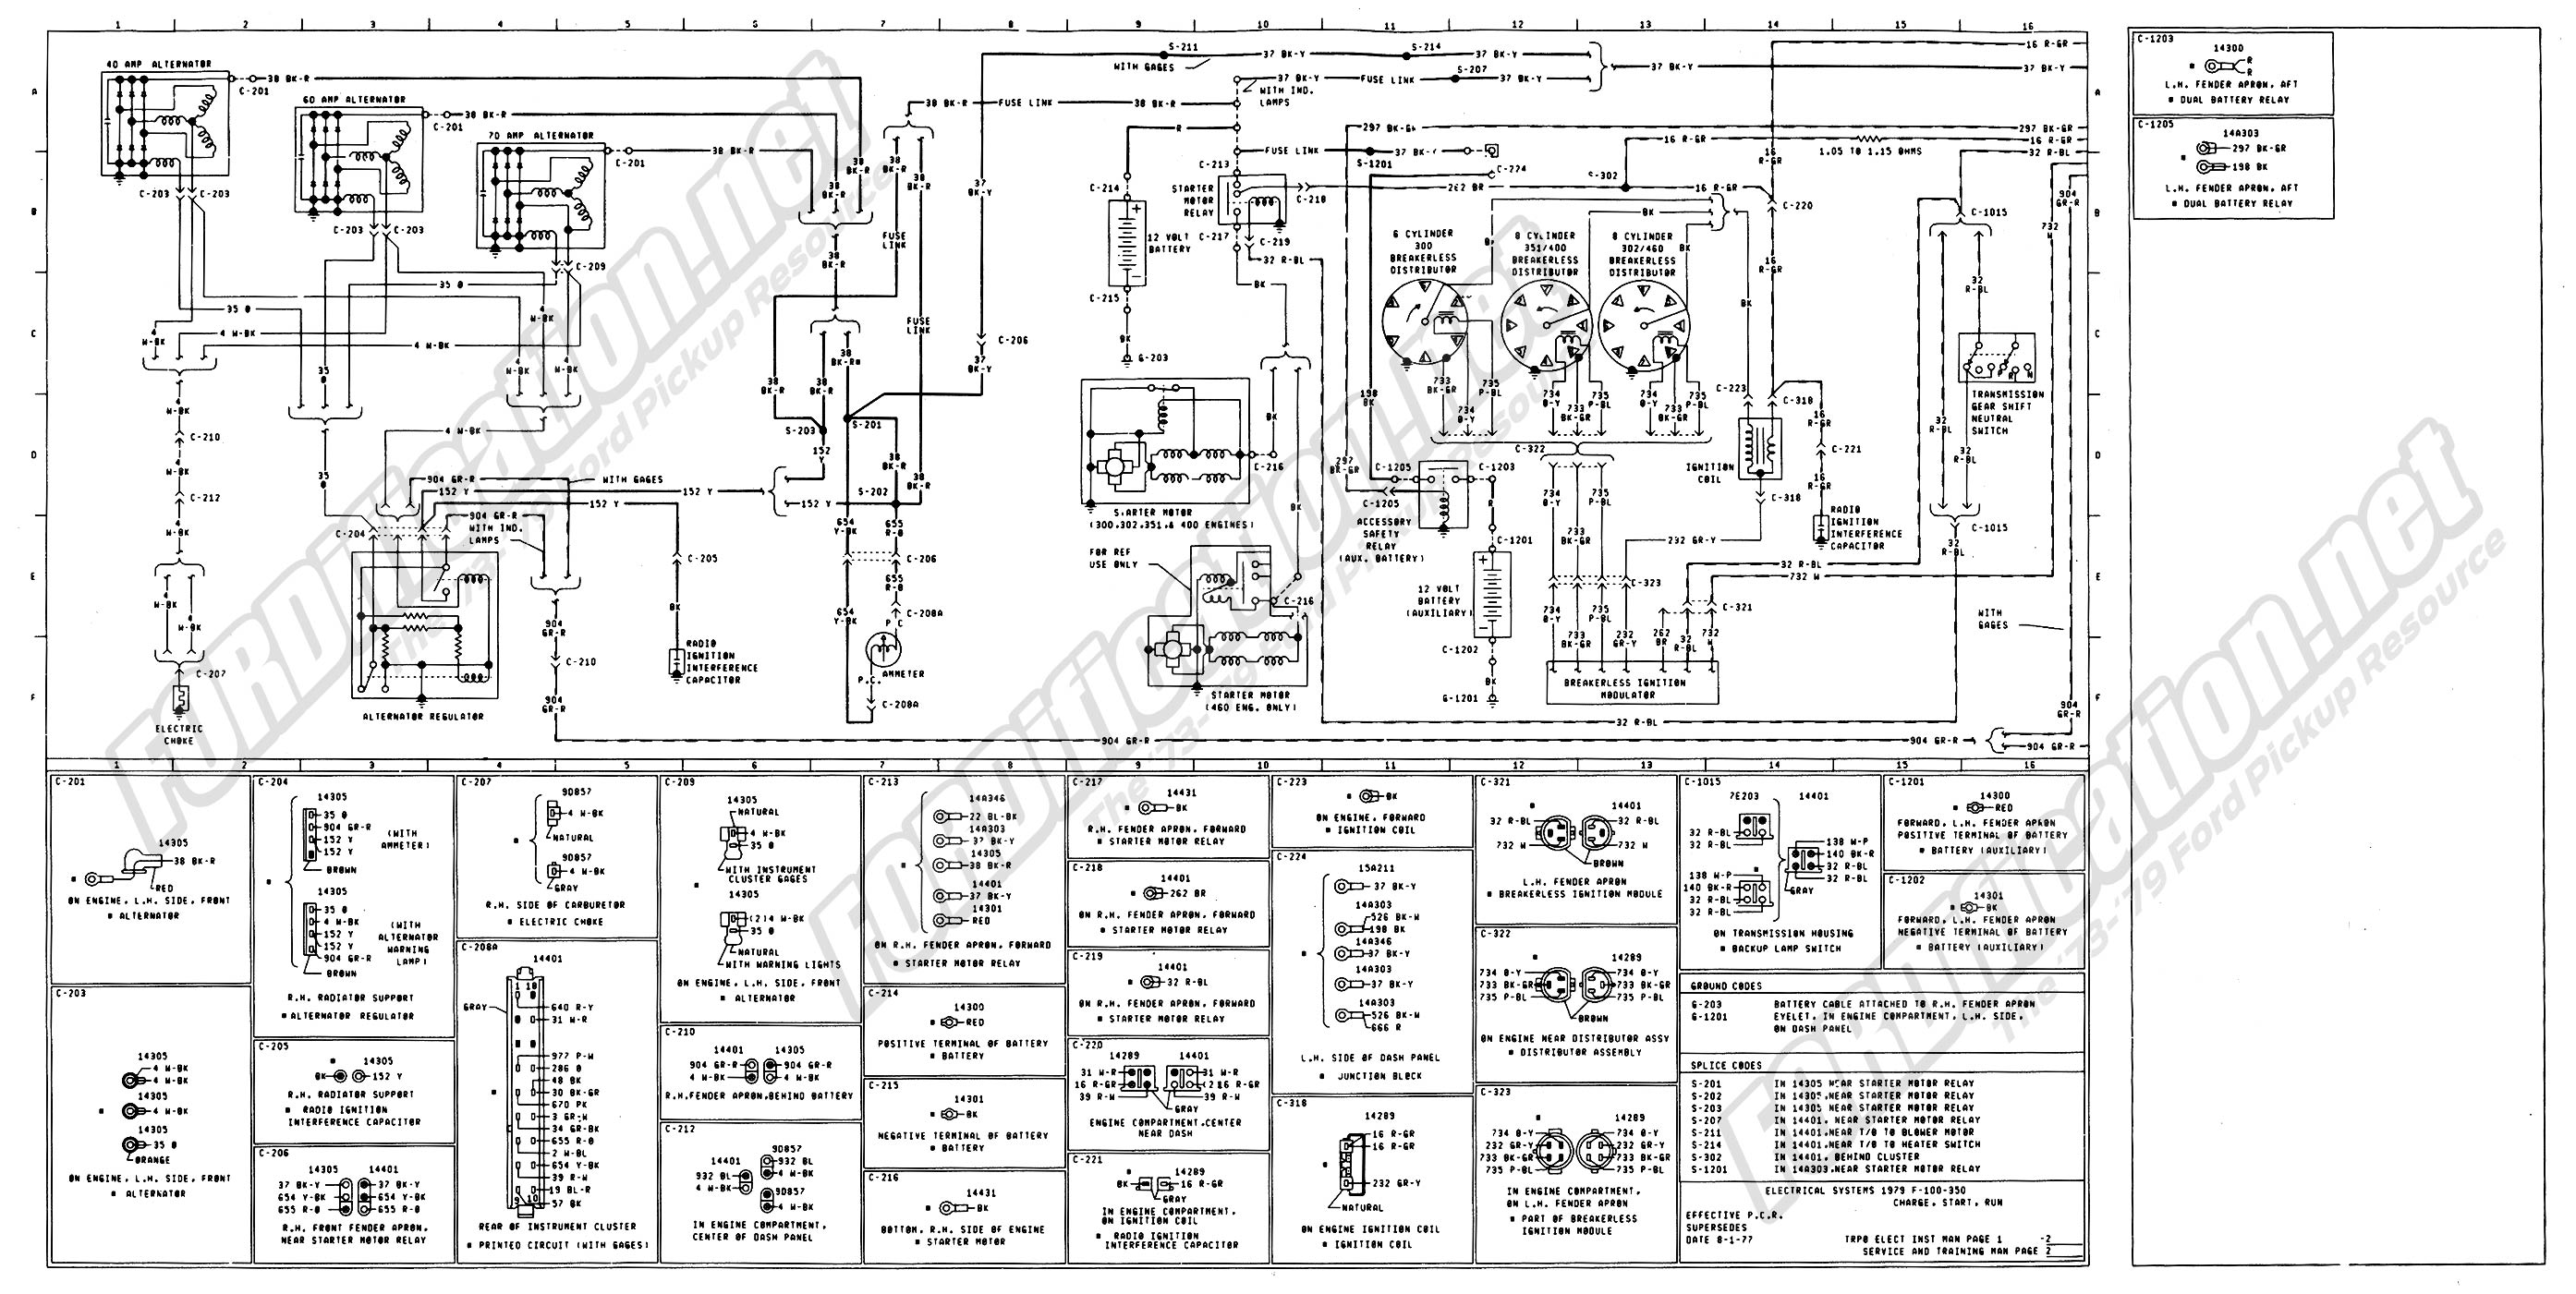 1988 Ford E150 Wiring Diagram Will Be A Thing 1989 1979 F600 Dump Truck Enthusiasts Forums 1990 Econoline E 450